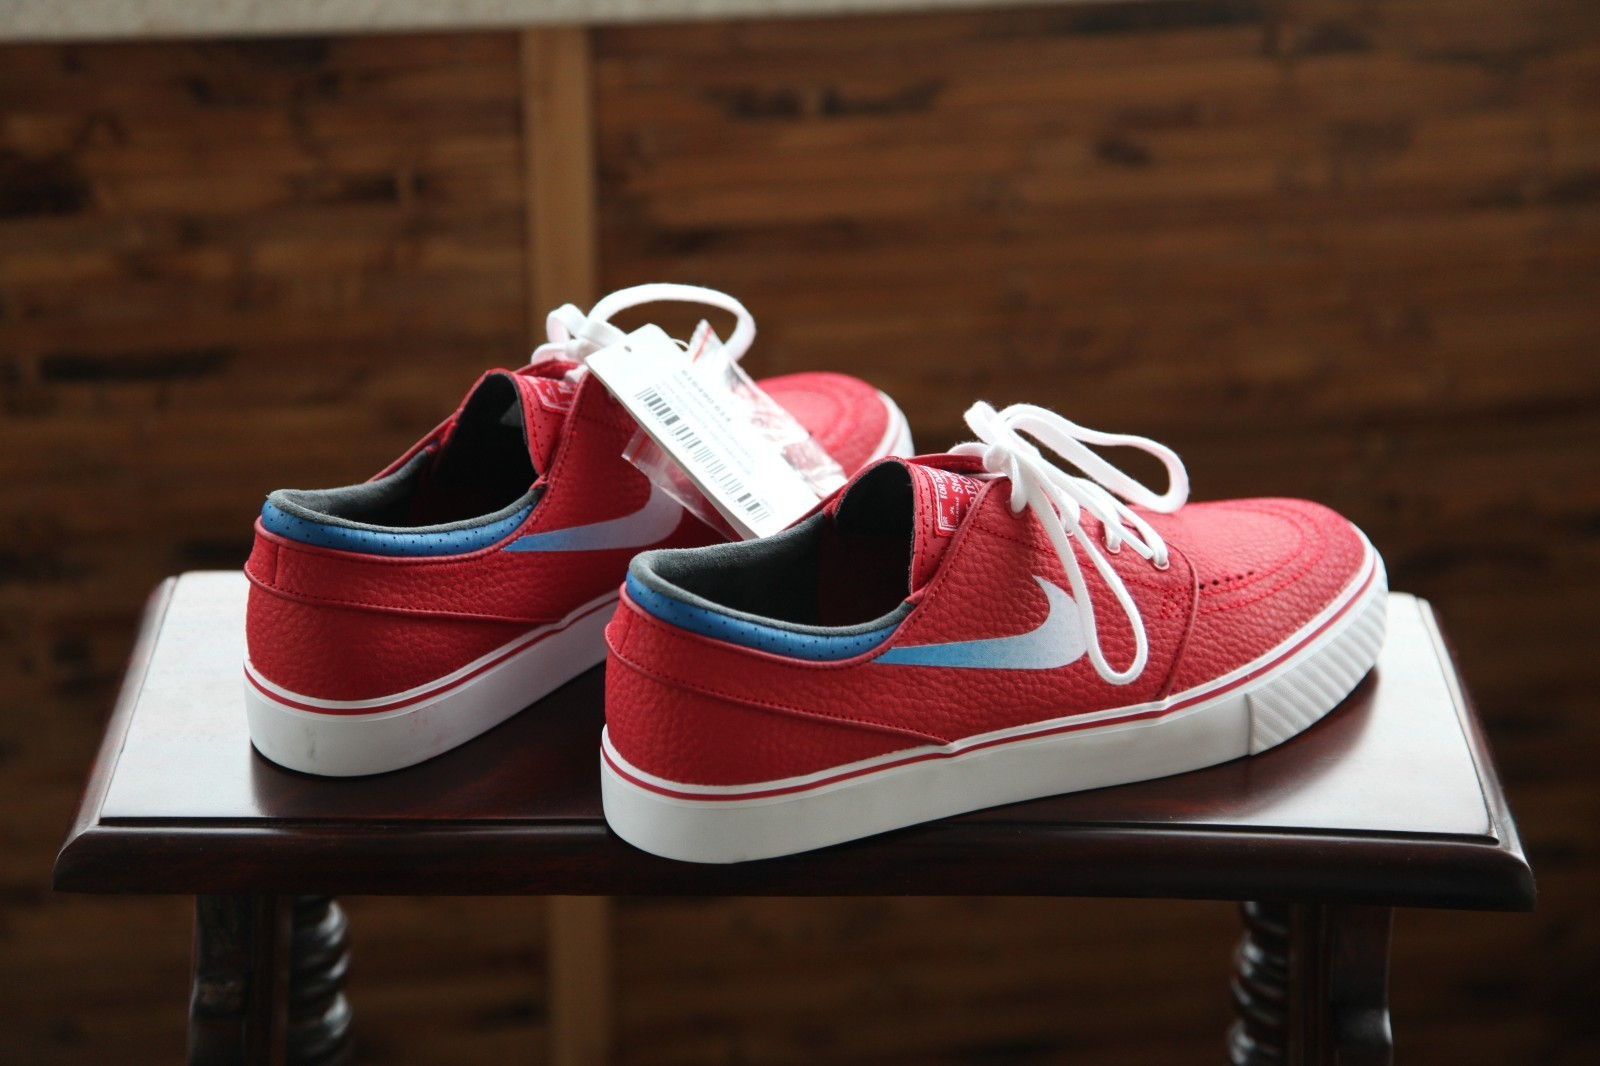 797d154ab4 Nike Sb White And Gym Red